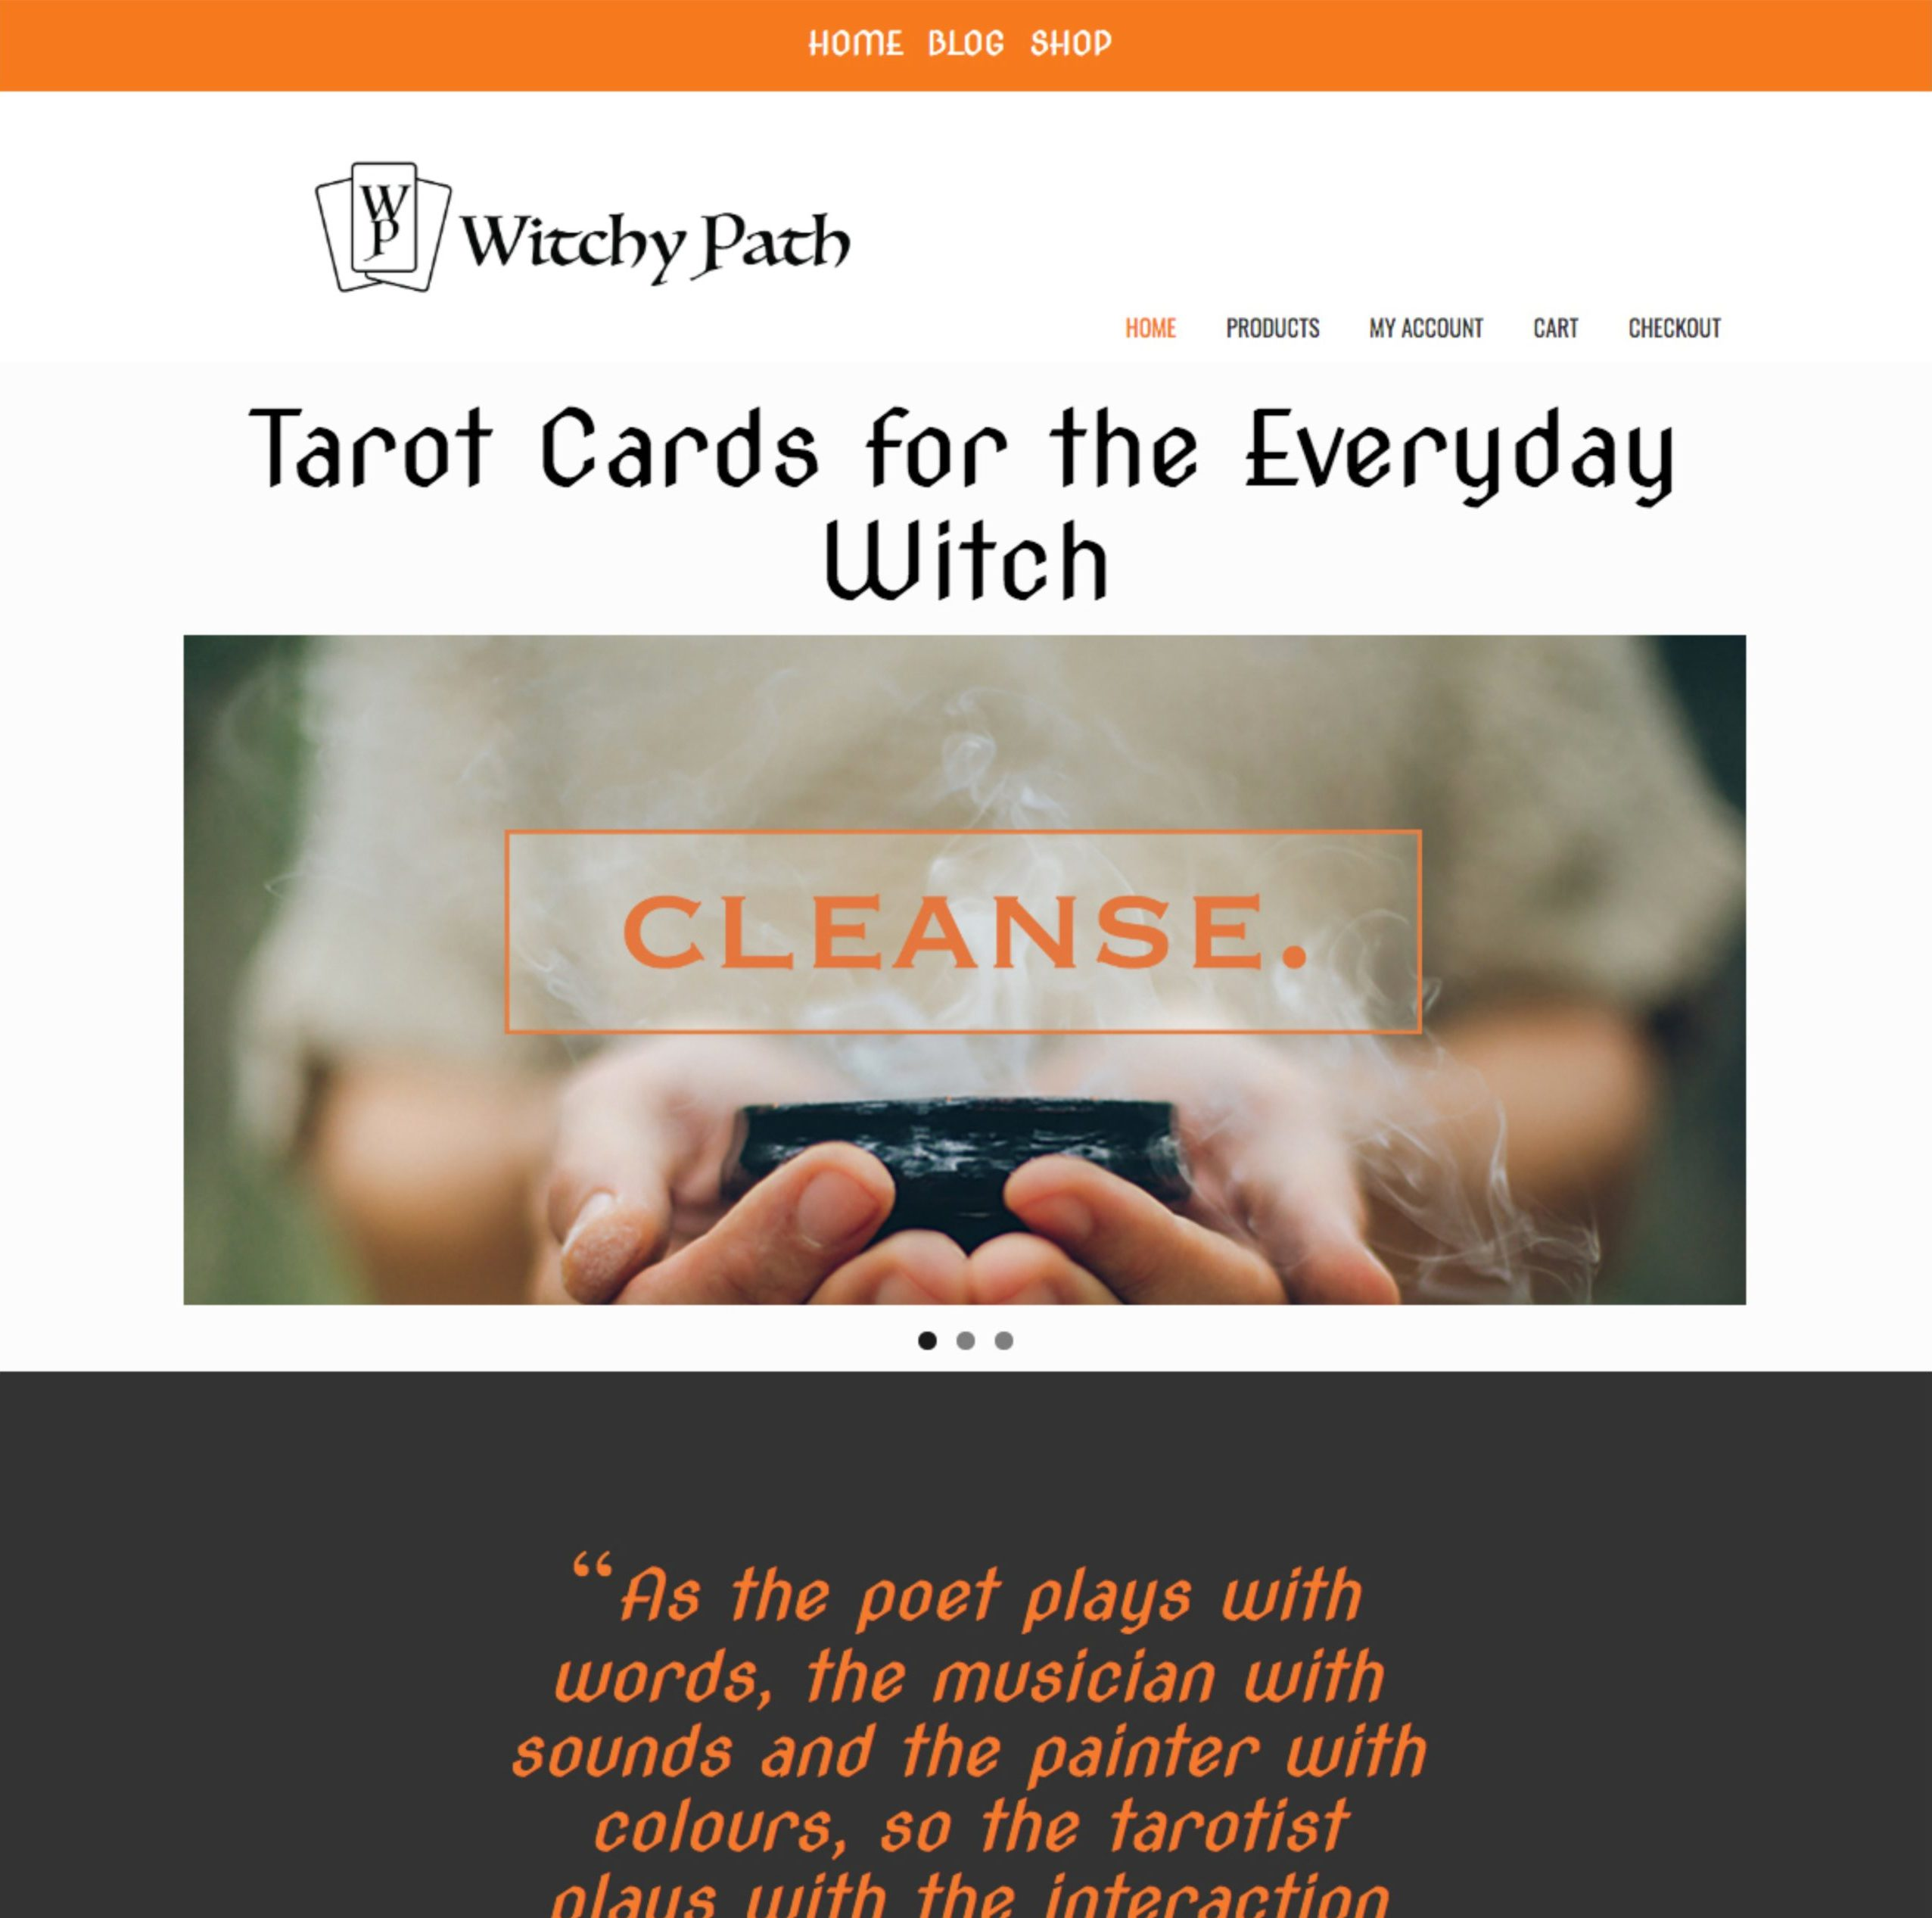 WitchyPath Website 1